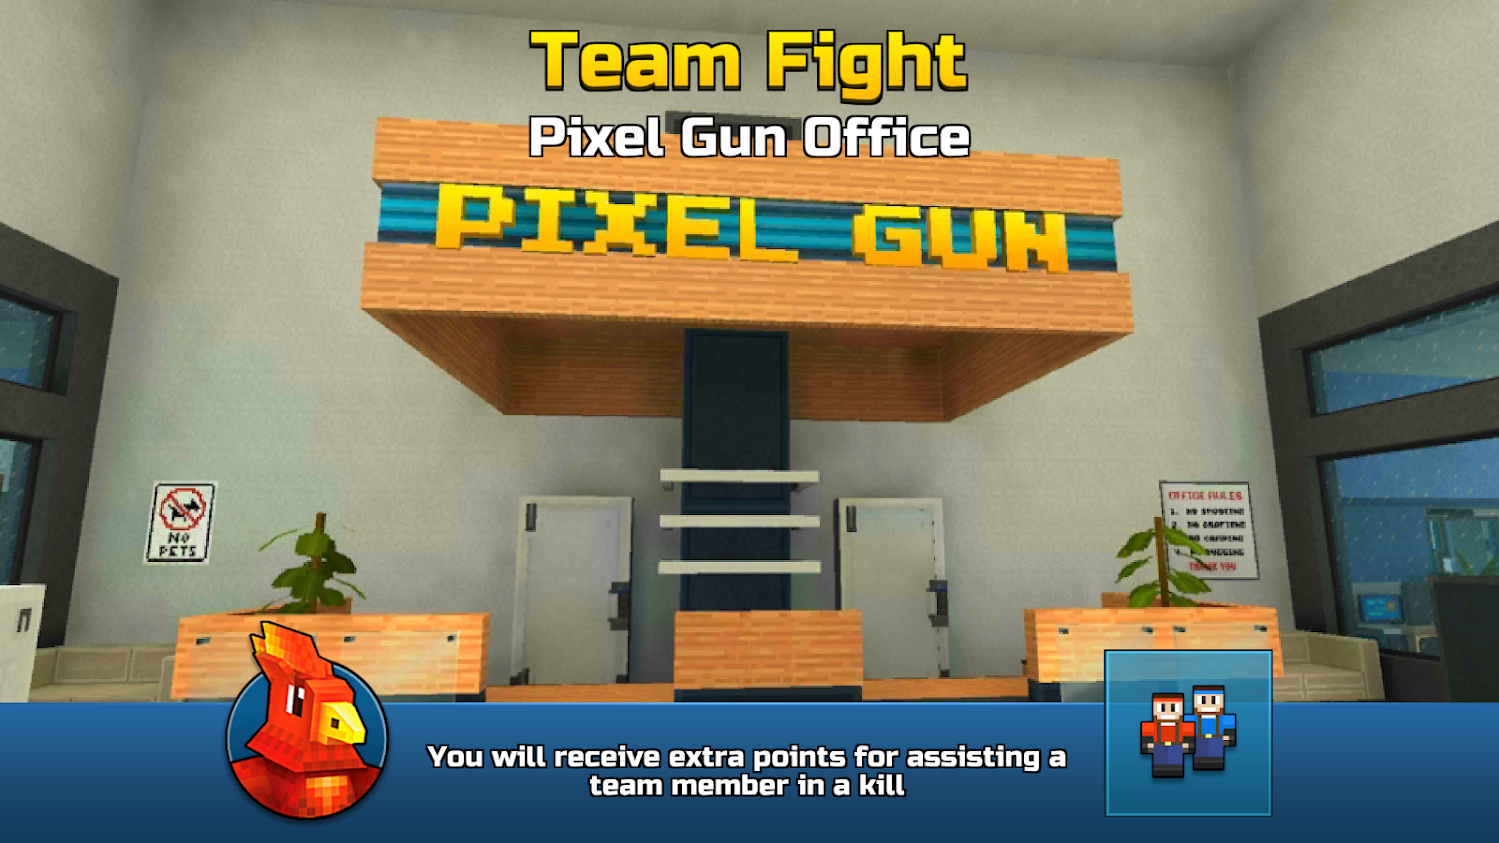 Pixel Gun Office